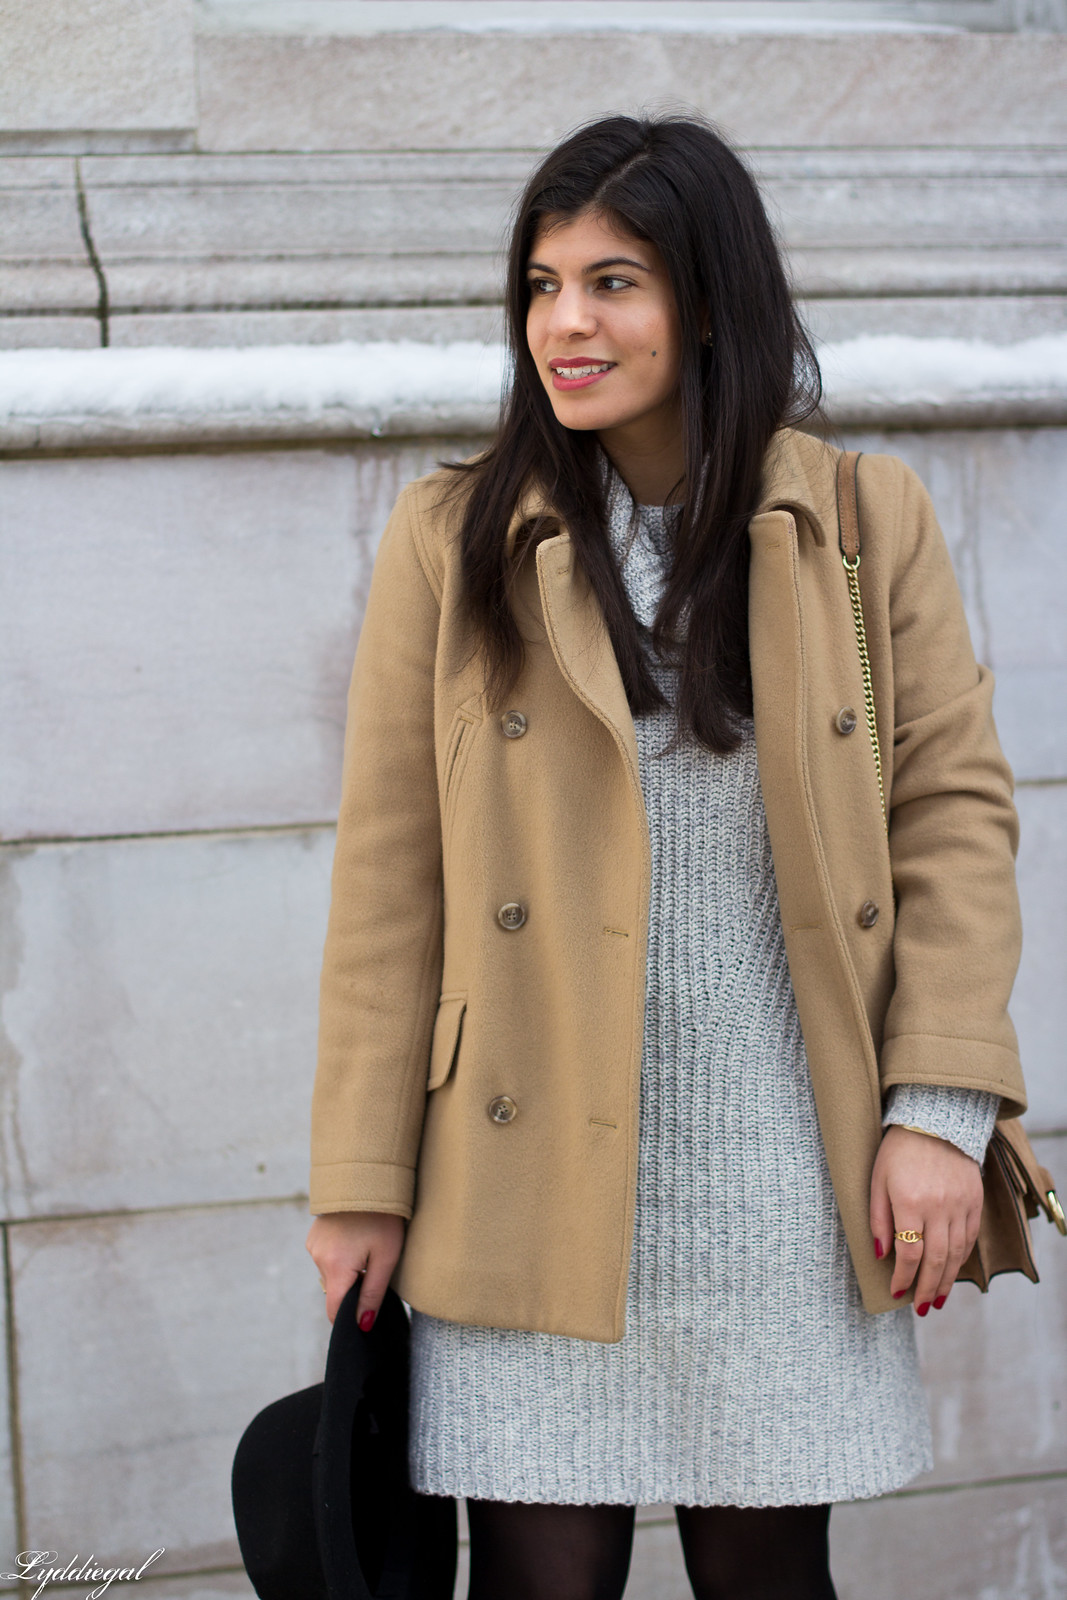 grey sweater dress, camel peacoat, black boots, winter outfit-5.jpg